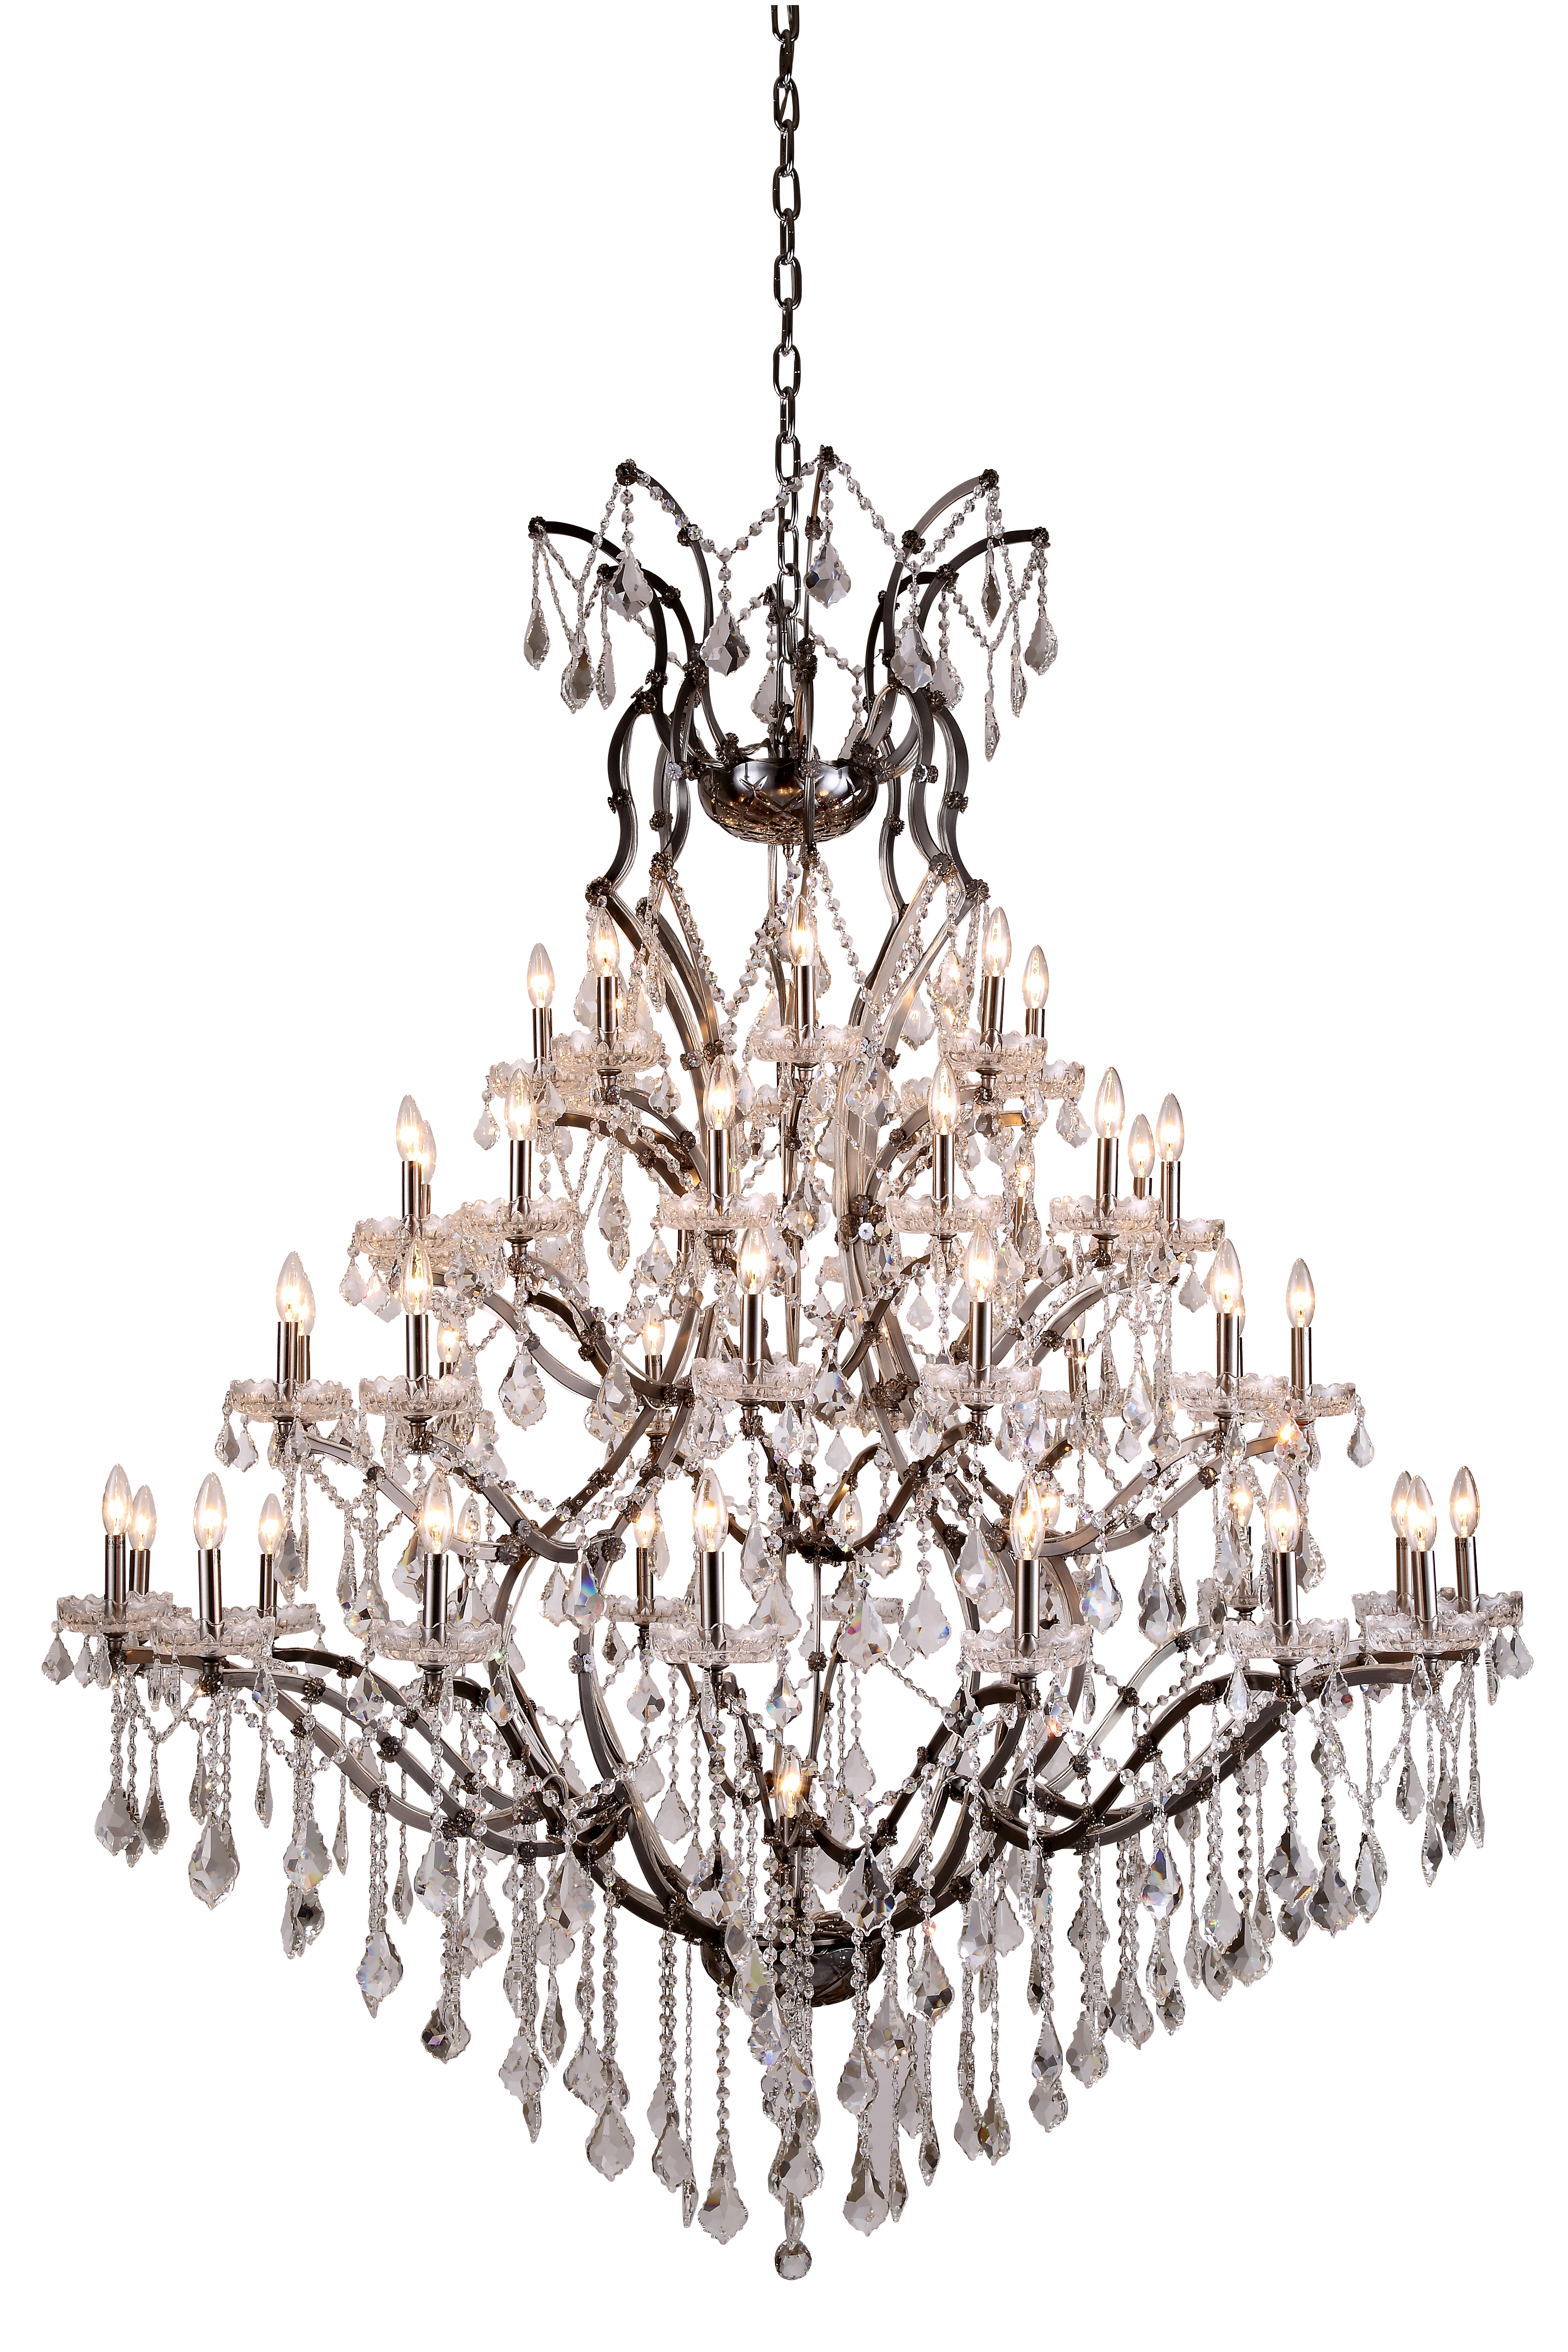 chic design target bohemian every style for chandeliers luxury affordable chandelier